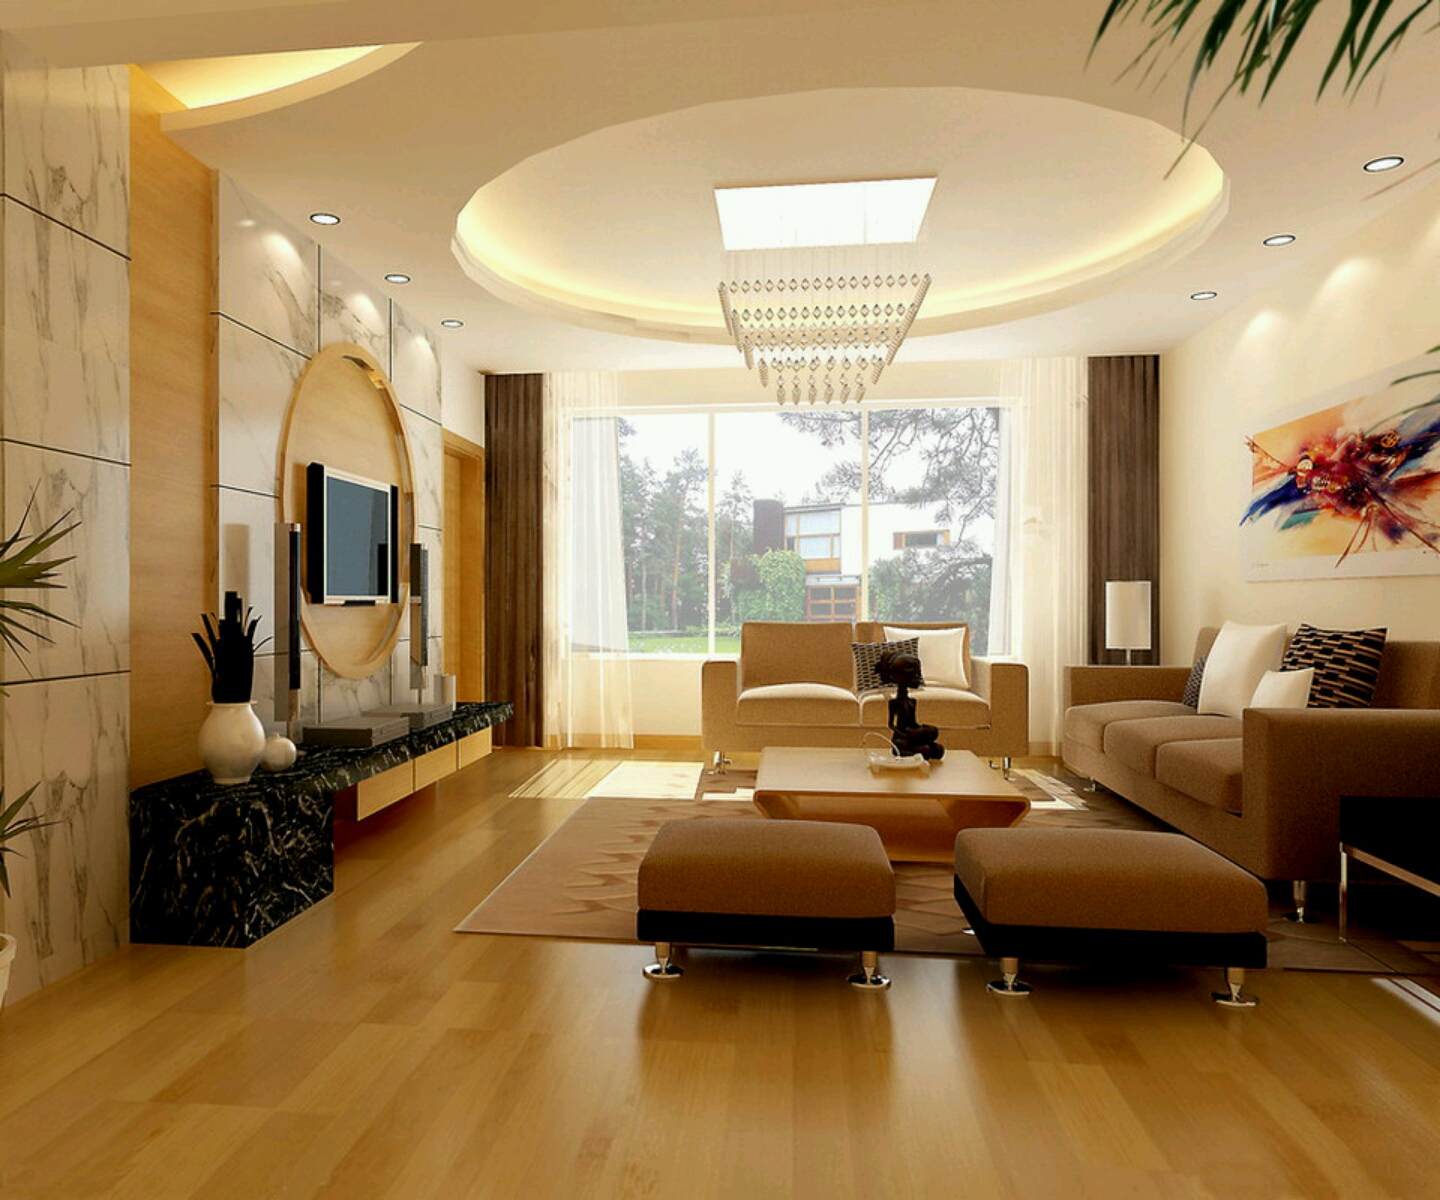 Modern interior decoration living rooms ceiling designs for Interior design ideas for home decor